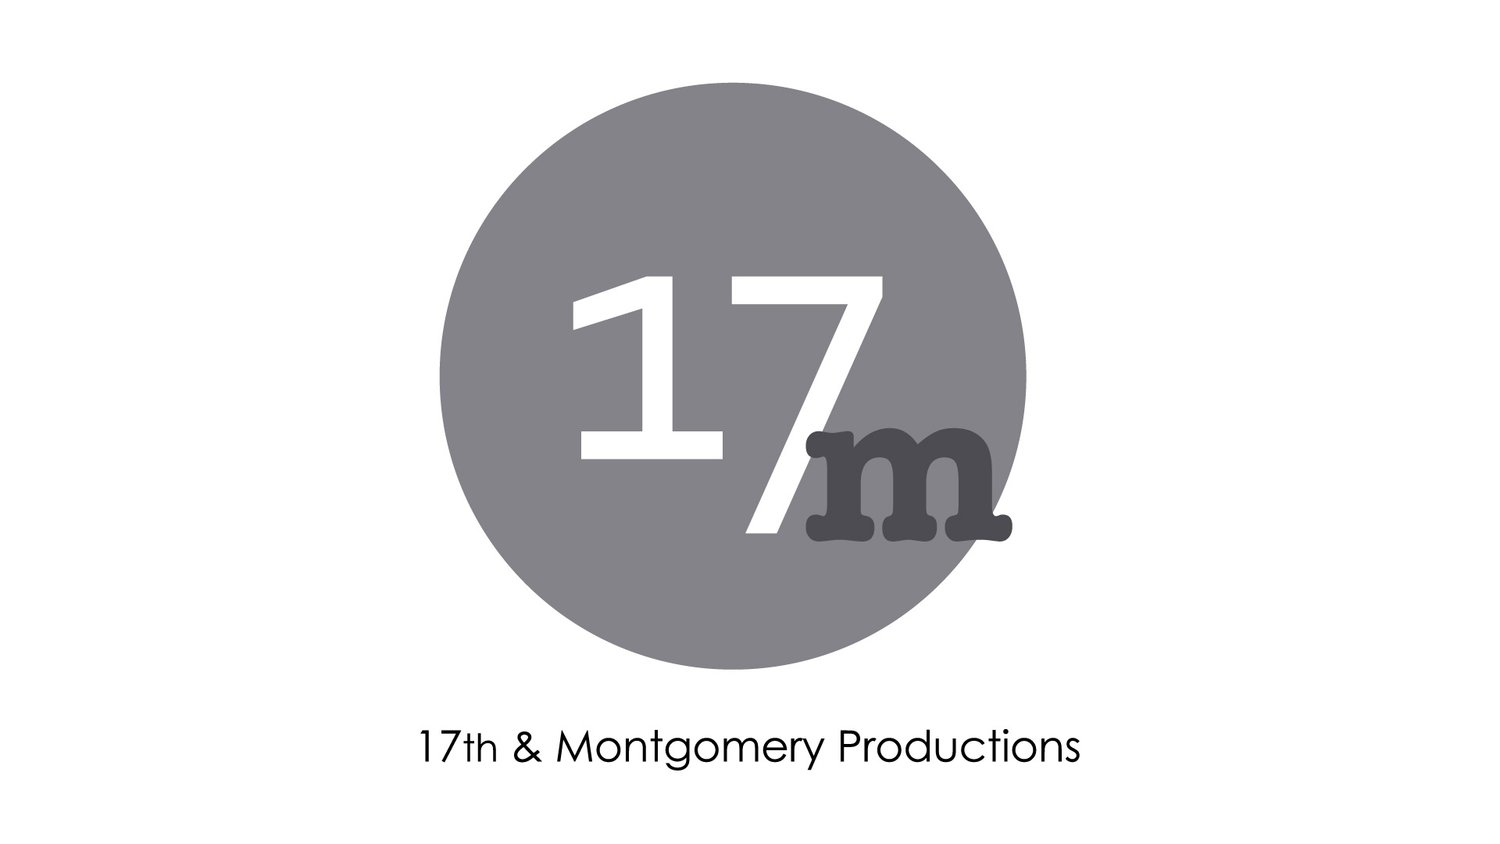 17th & Montgomery Productions